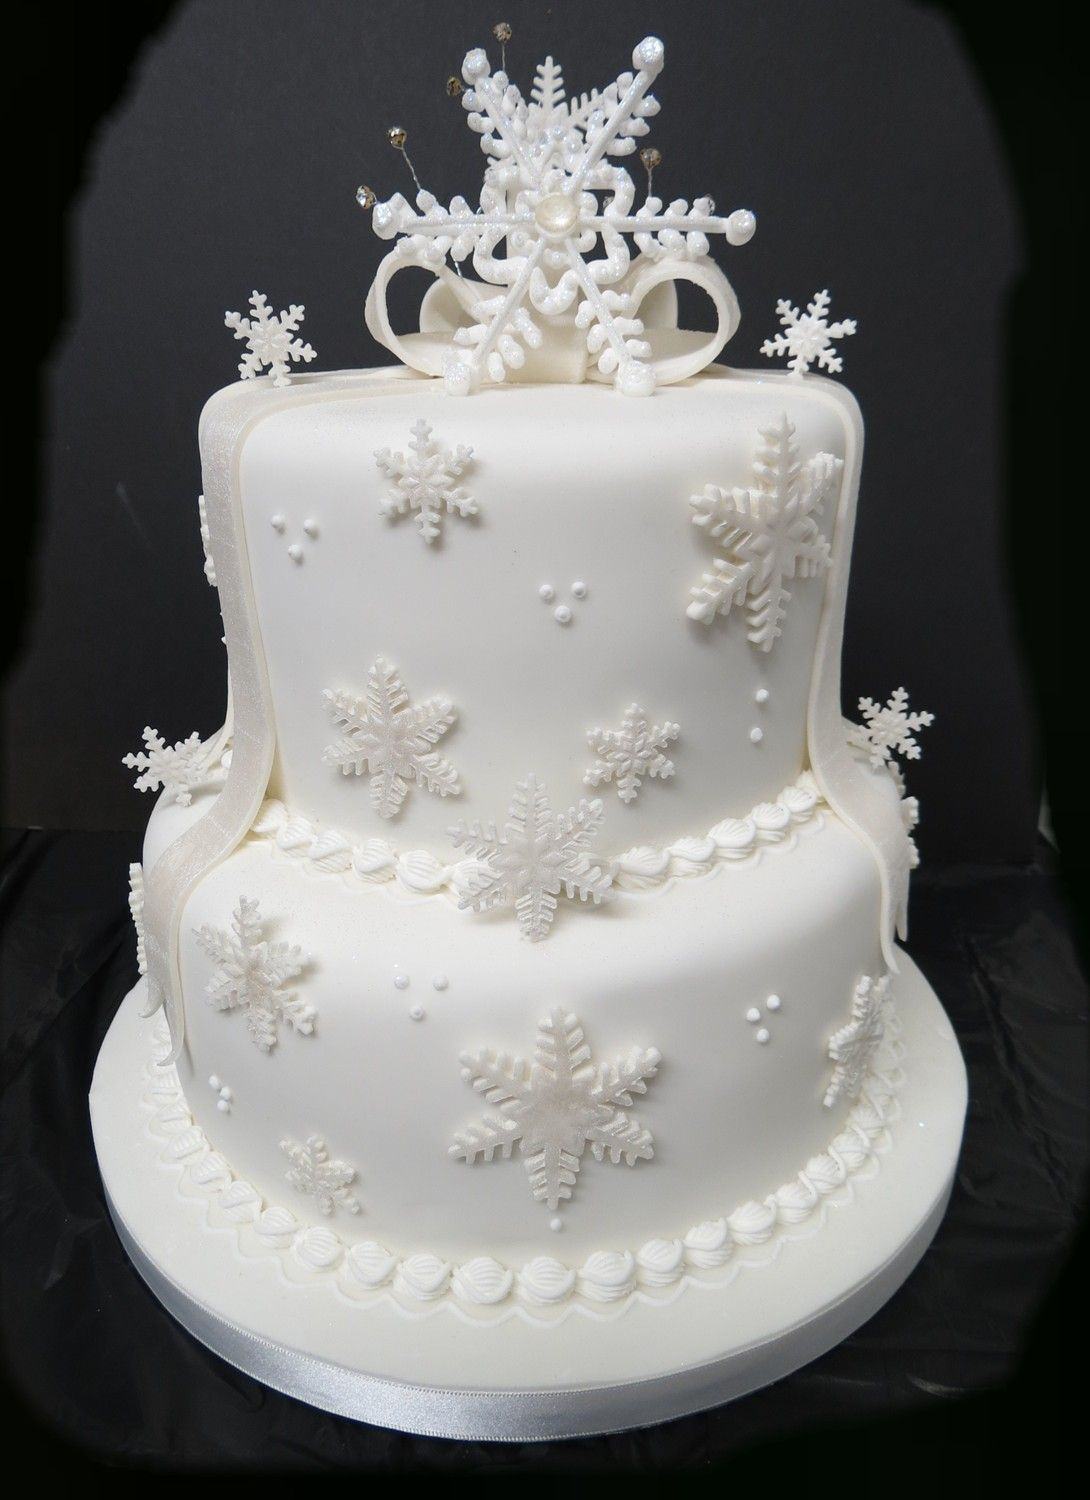 A 2 tier Snowflake Wedding Cake | Frozen weddings | Pinterest ...